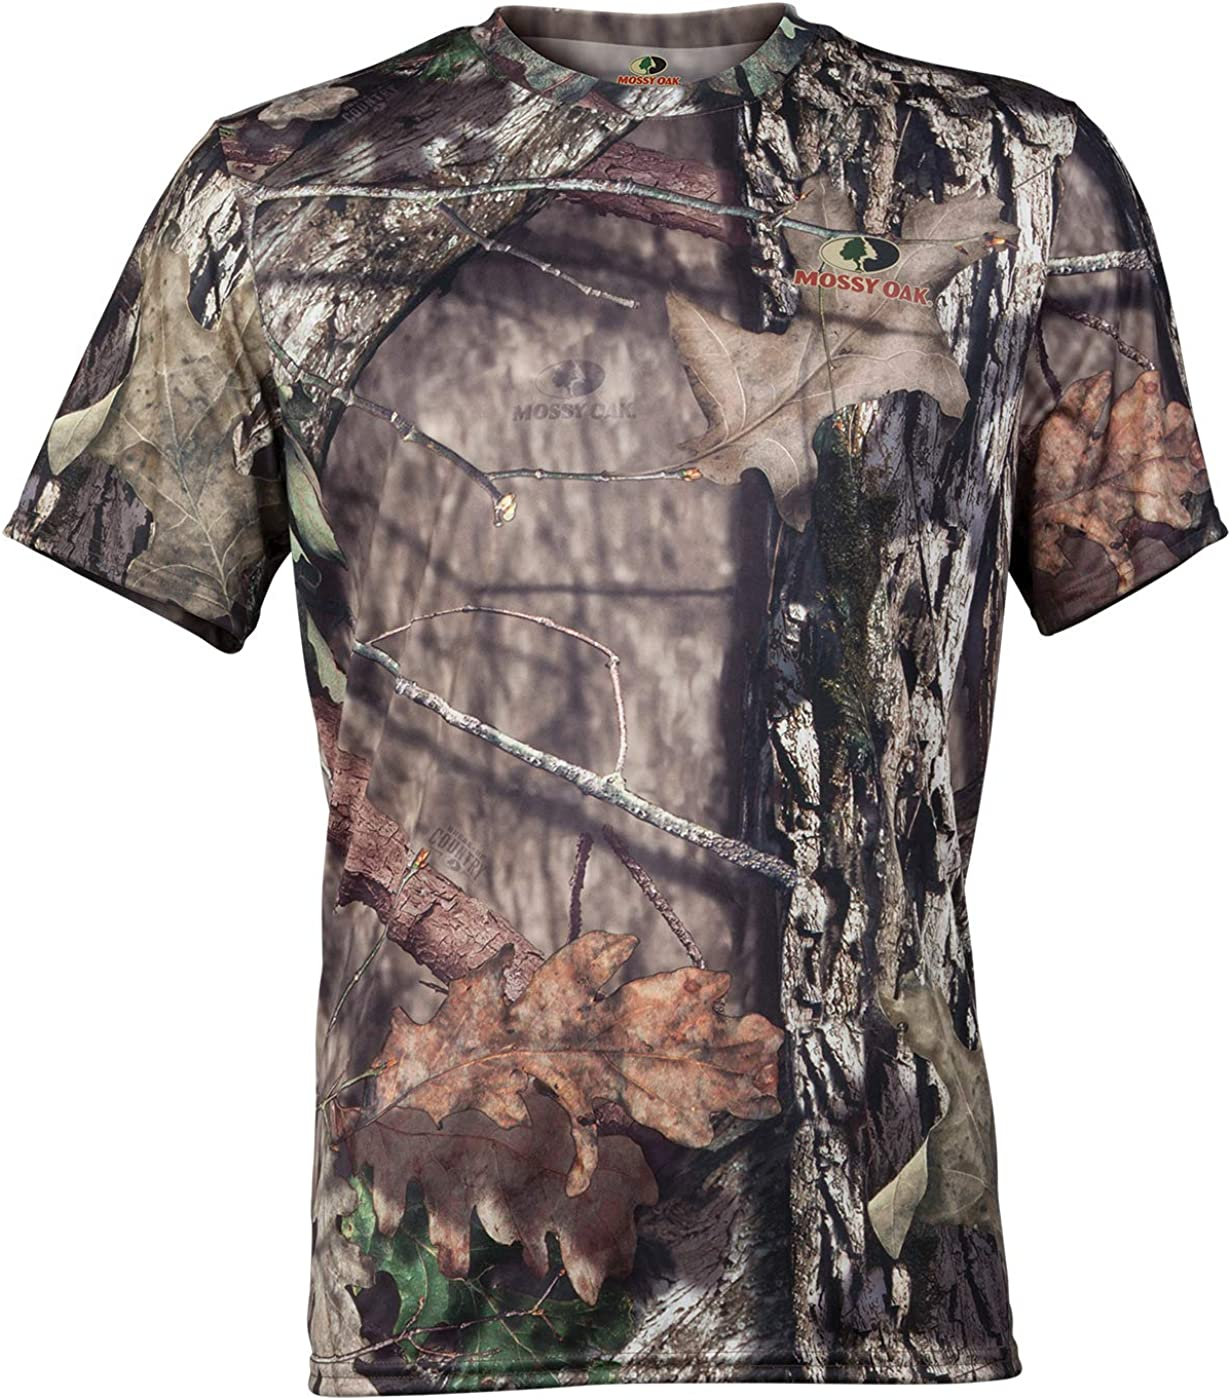 Mossy Oak Size M-2XL Moisture Wicking Short Sleeve Mens Camo Tee Shirt